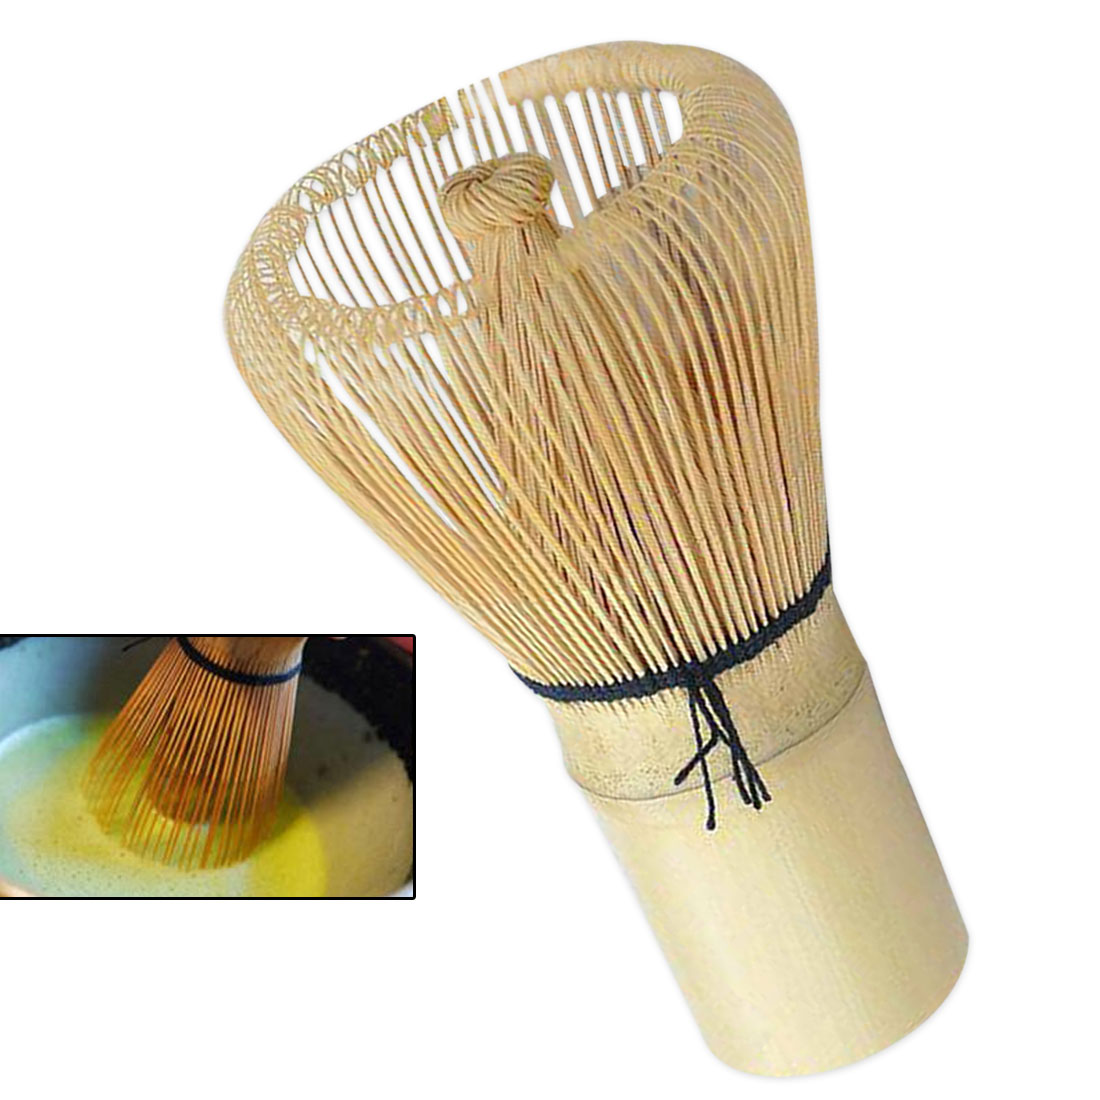 Japanese Bamboo Matcha Green Tea Powder Whisk Matcha Bamboo Whisk Bamboo Chasen Useful Brush Tools Kitchen Accessories